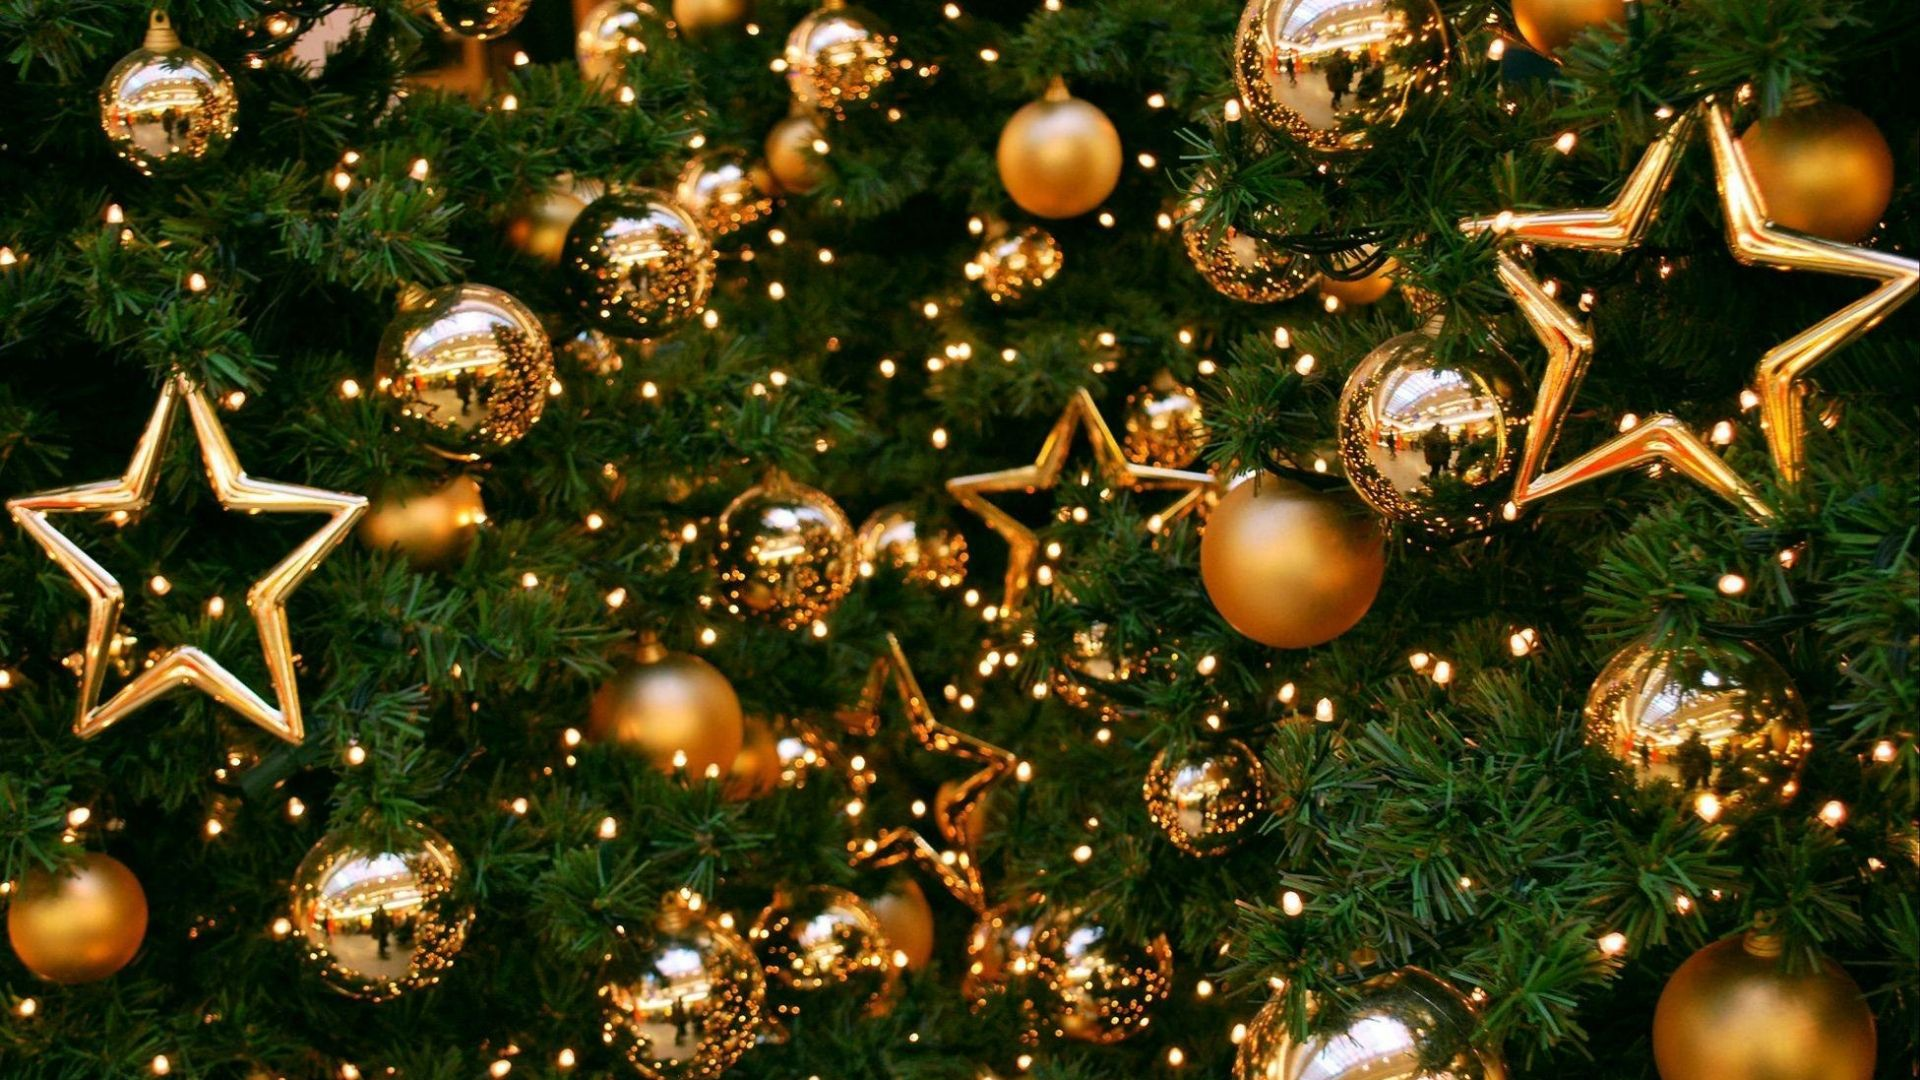 Christmas, New Year, toys, fir-tree, balls, decorations, 4k (horizontal)